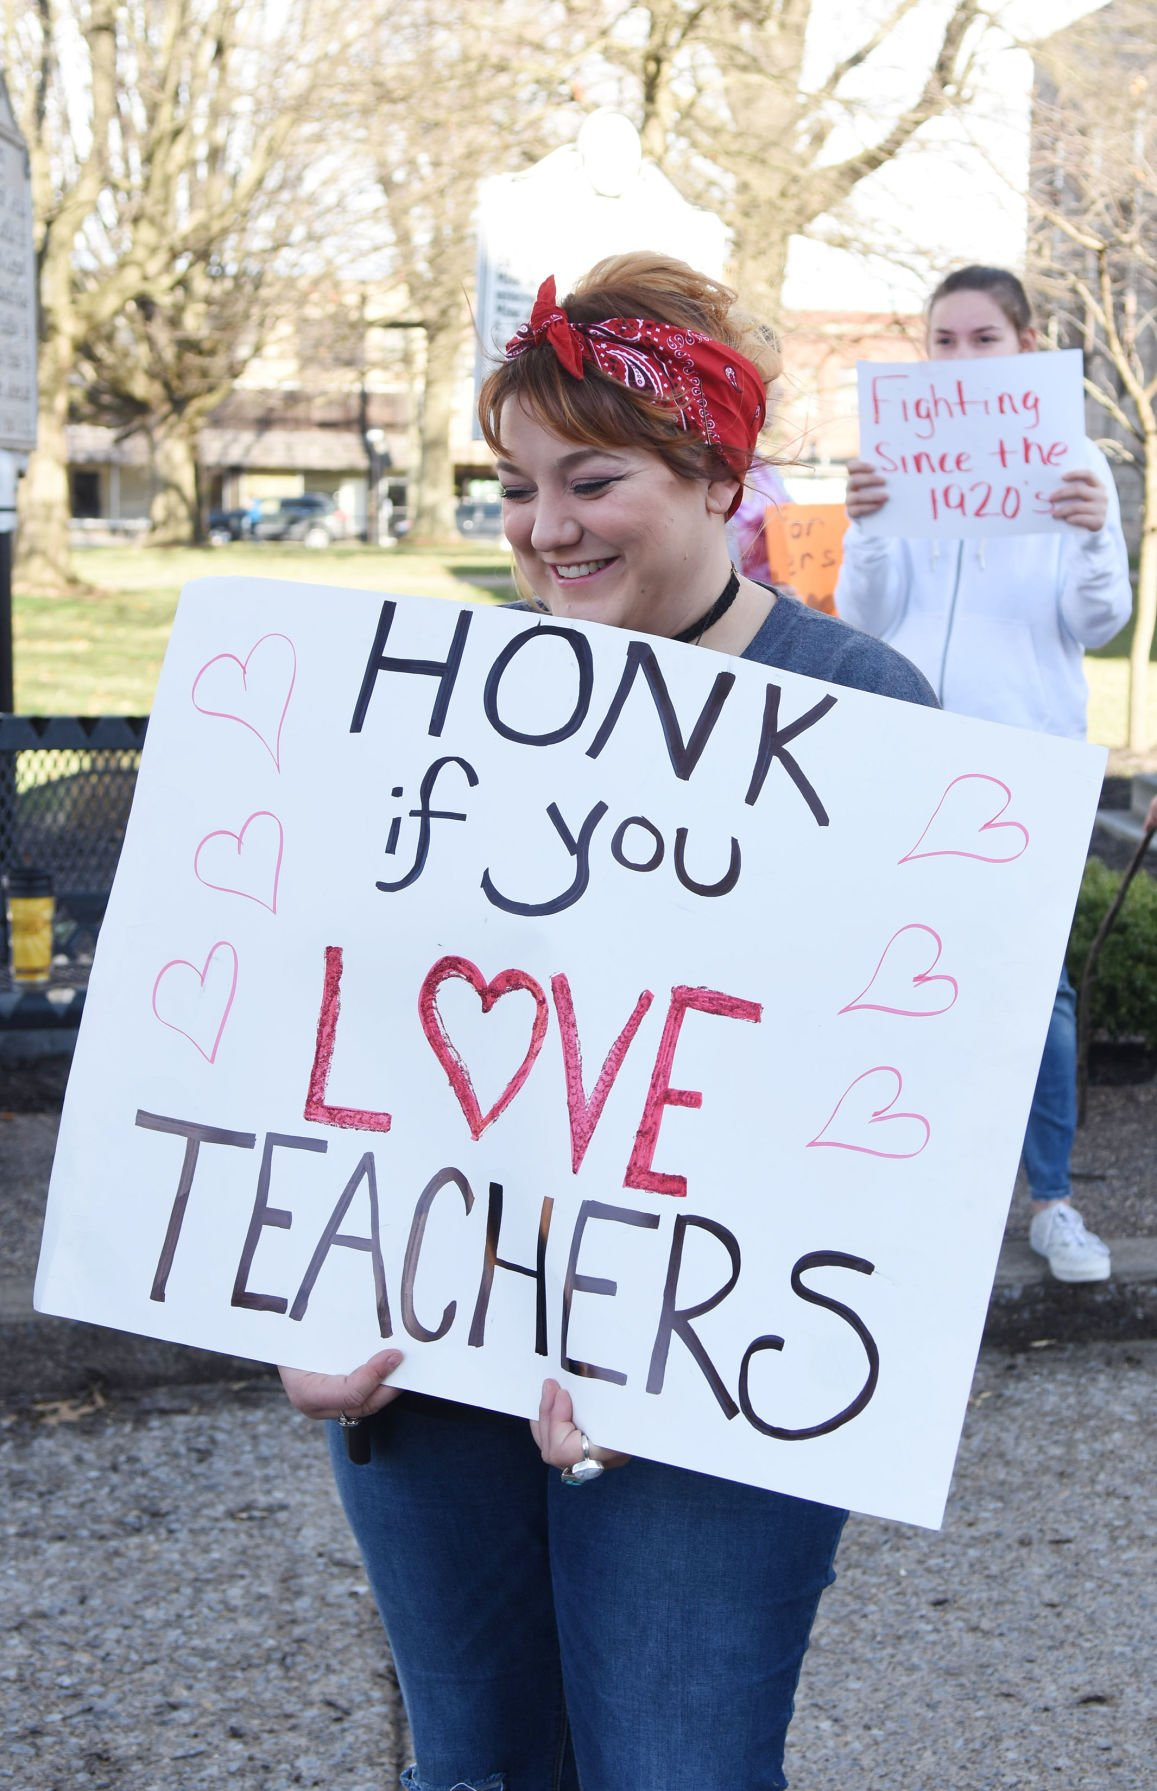 Teachers rally at the Capitol as part of statewide walkout